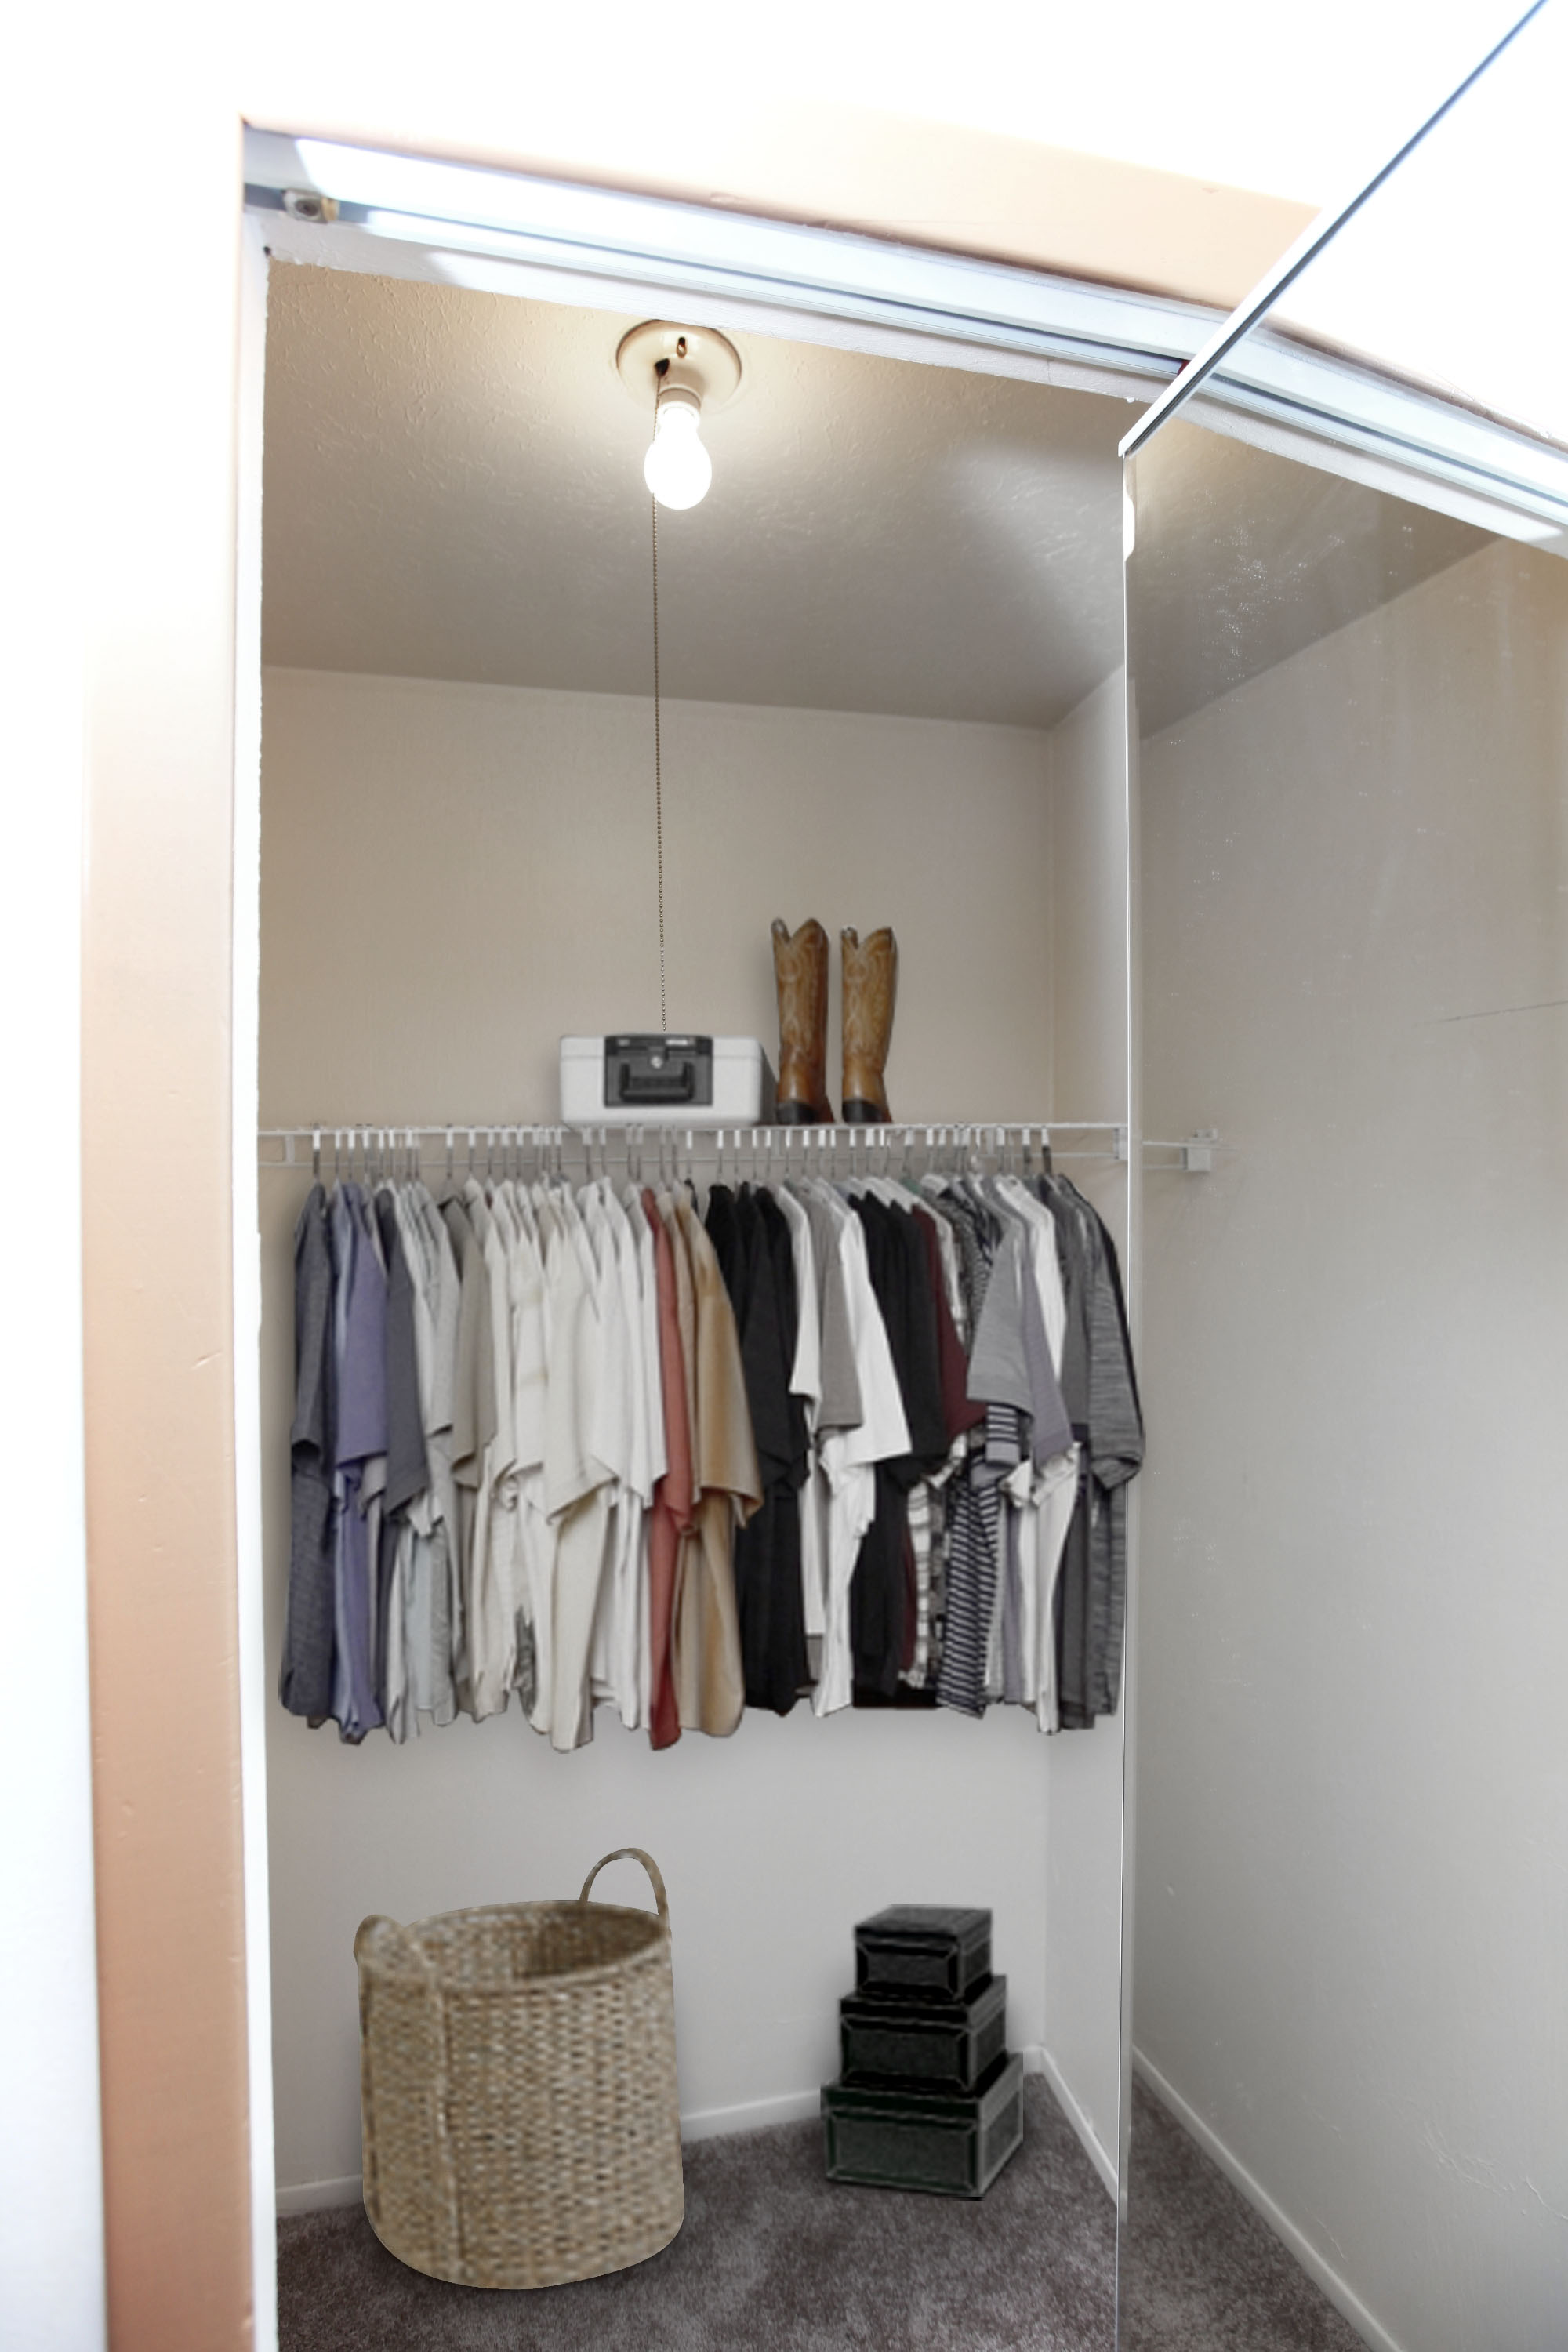 2B Walk-in Closet at the Greenridge on Euclid Apartments in Euclid, OH